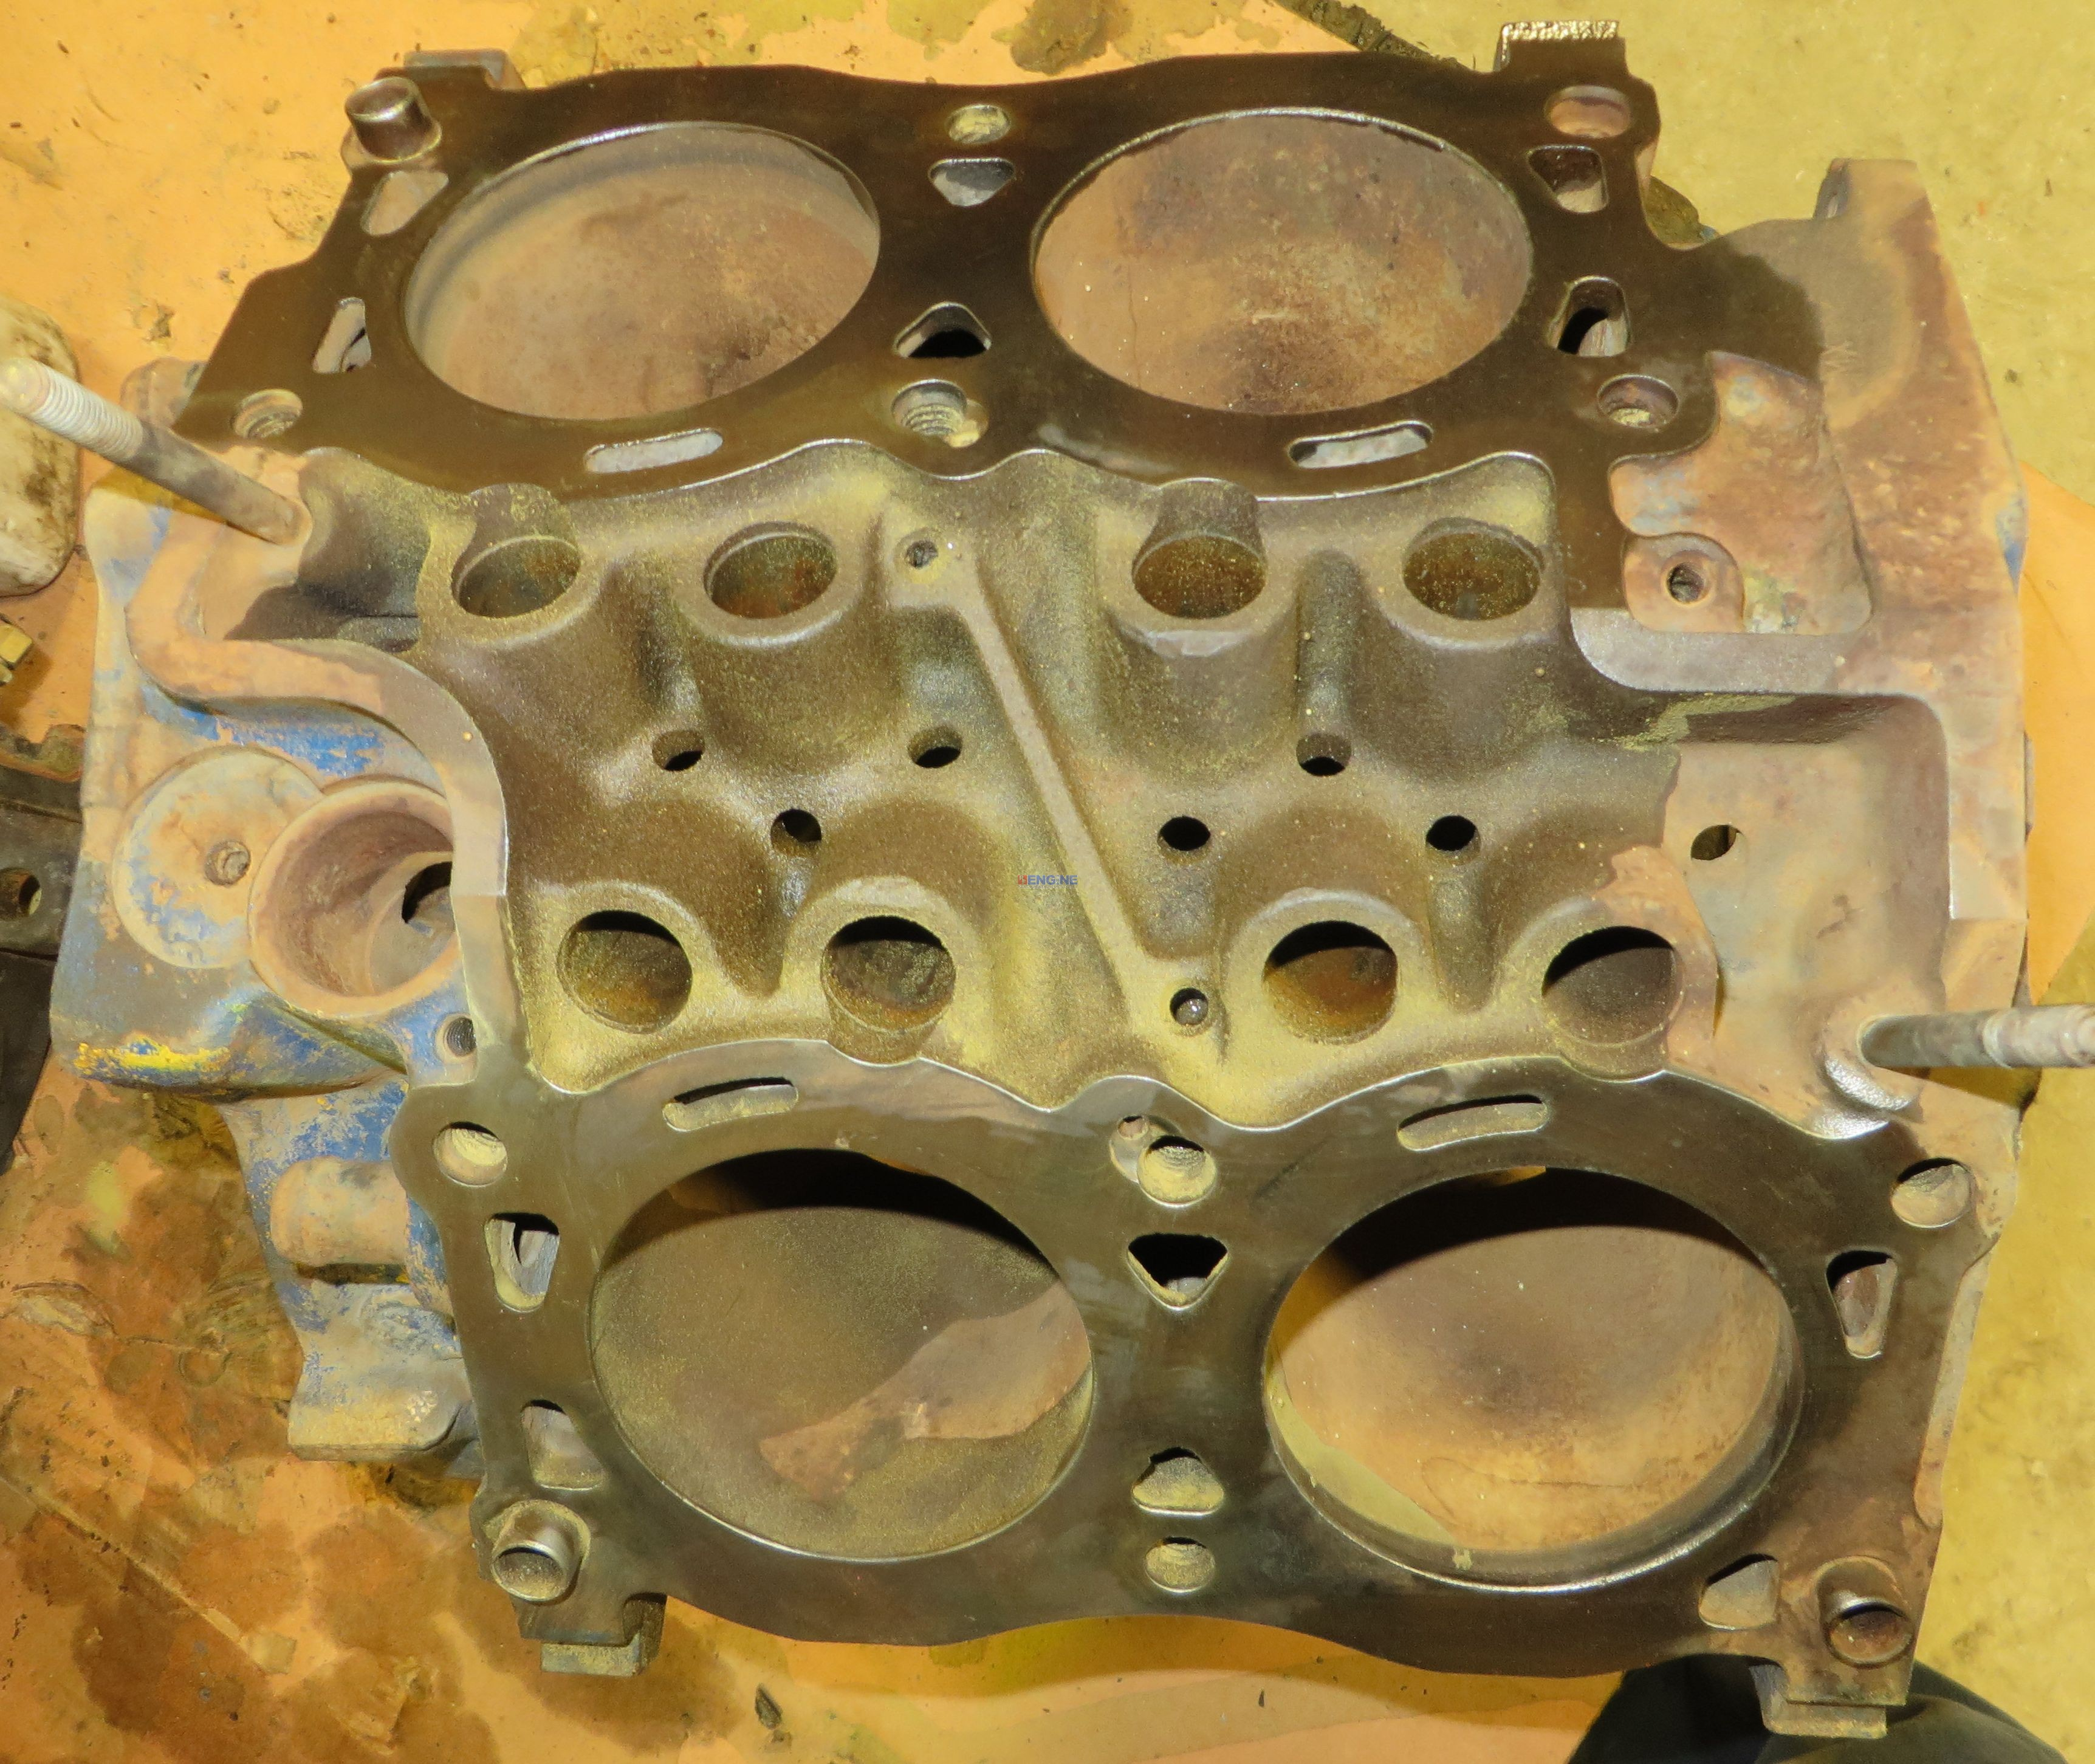 material use in engine block Metalink cracked engine block repair kit a cracked engine block can be returned to service using metalink ml400 machinable repair™ compound and affecting the.